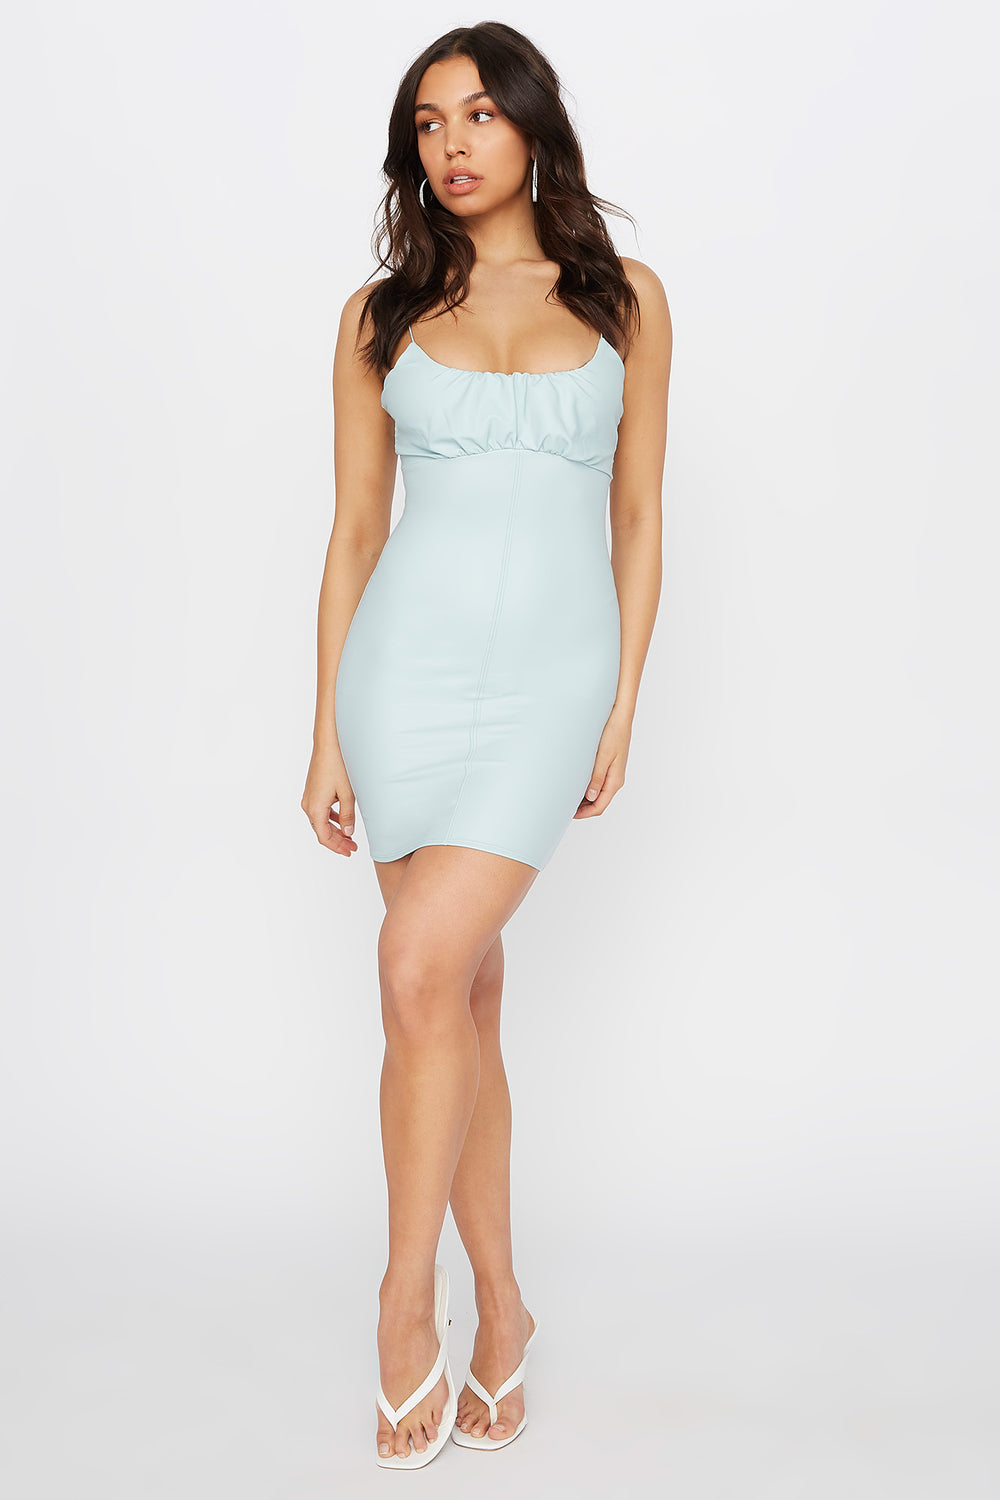 Faux-Leather Ruched Bodycon Mini Dress Light Blue